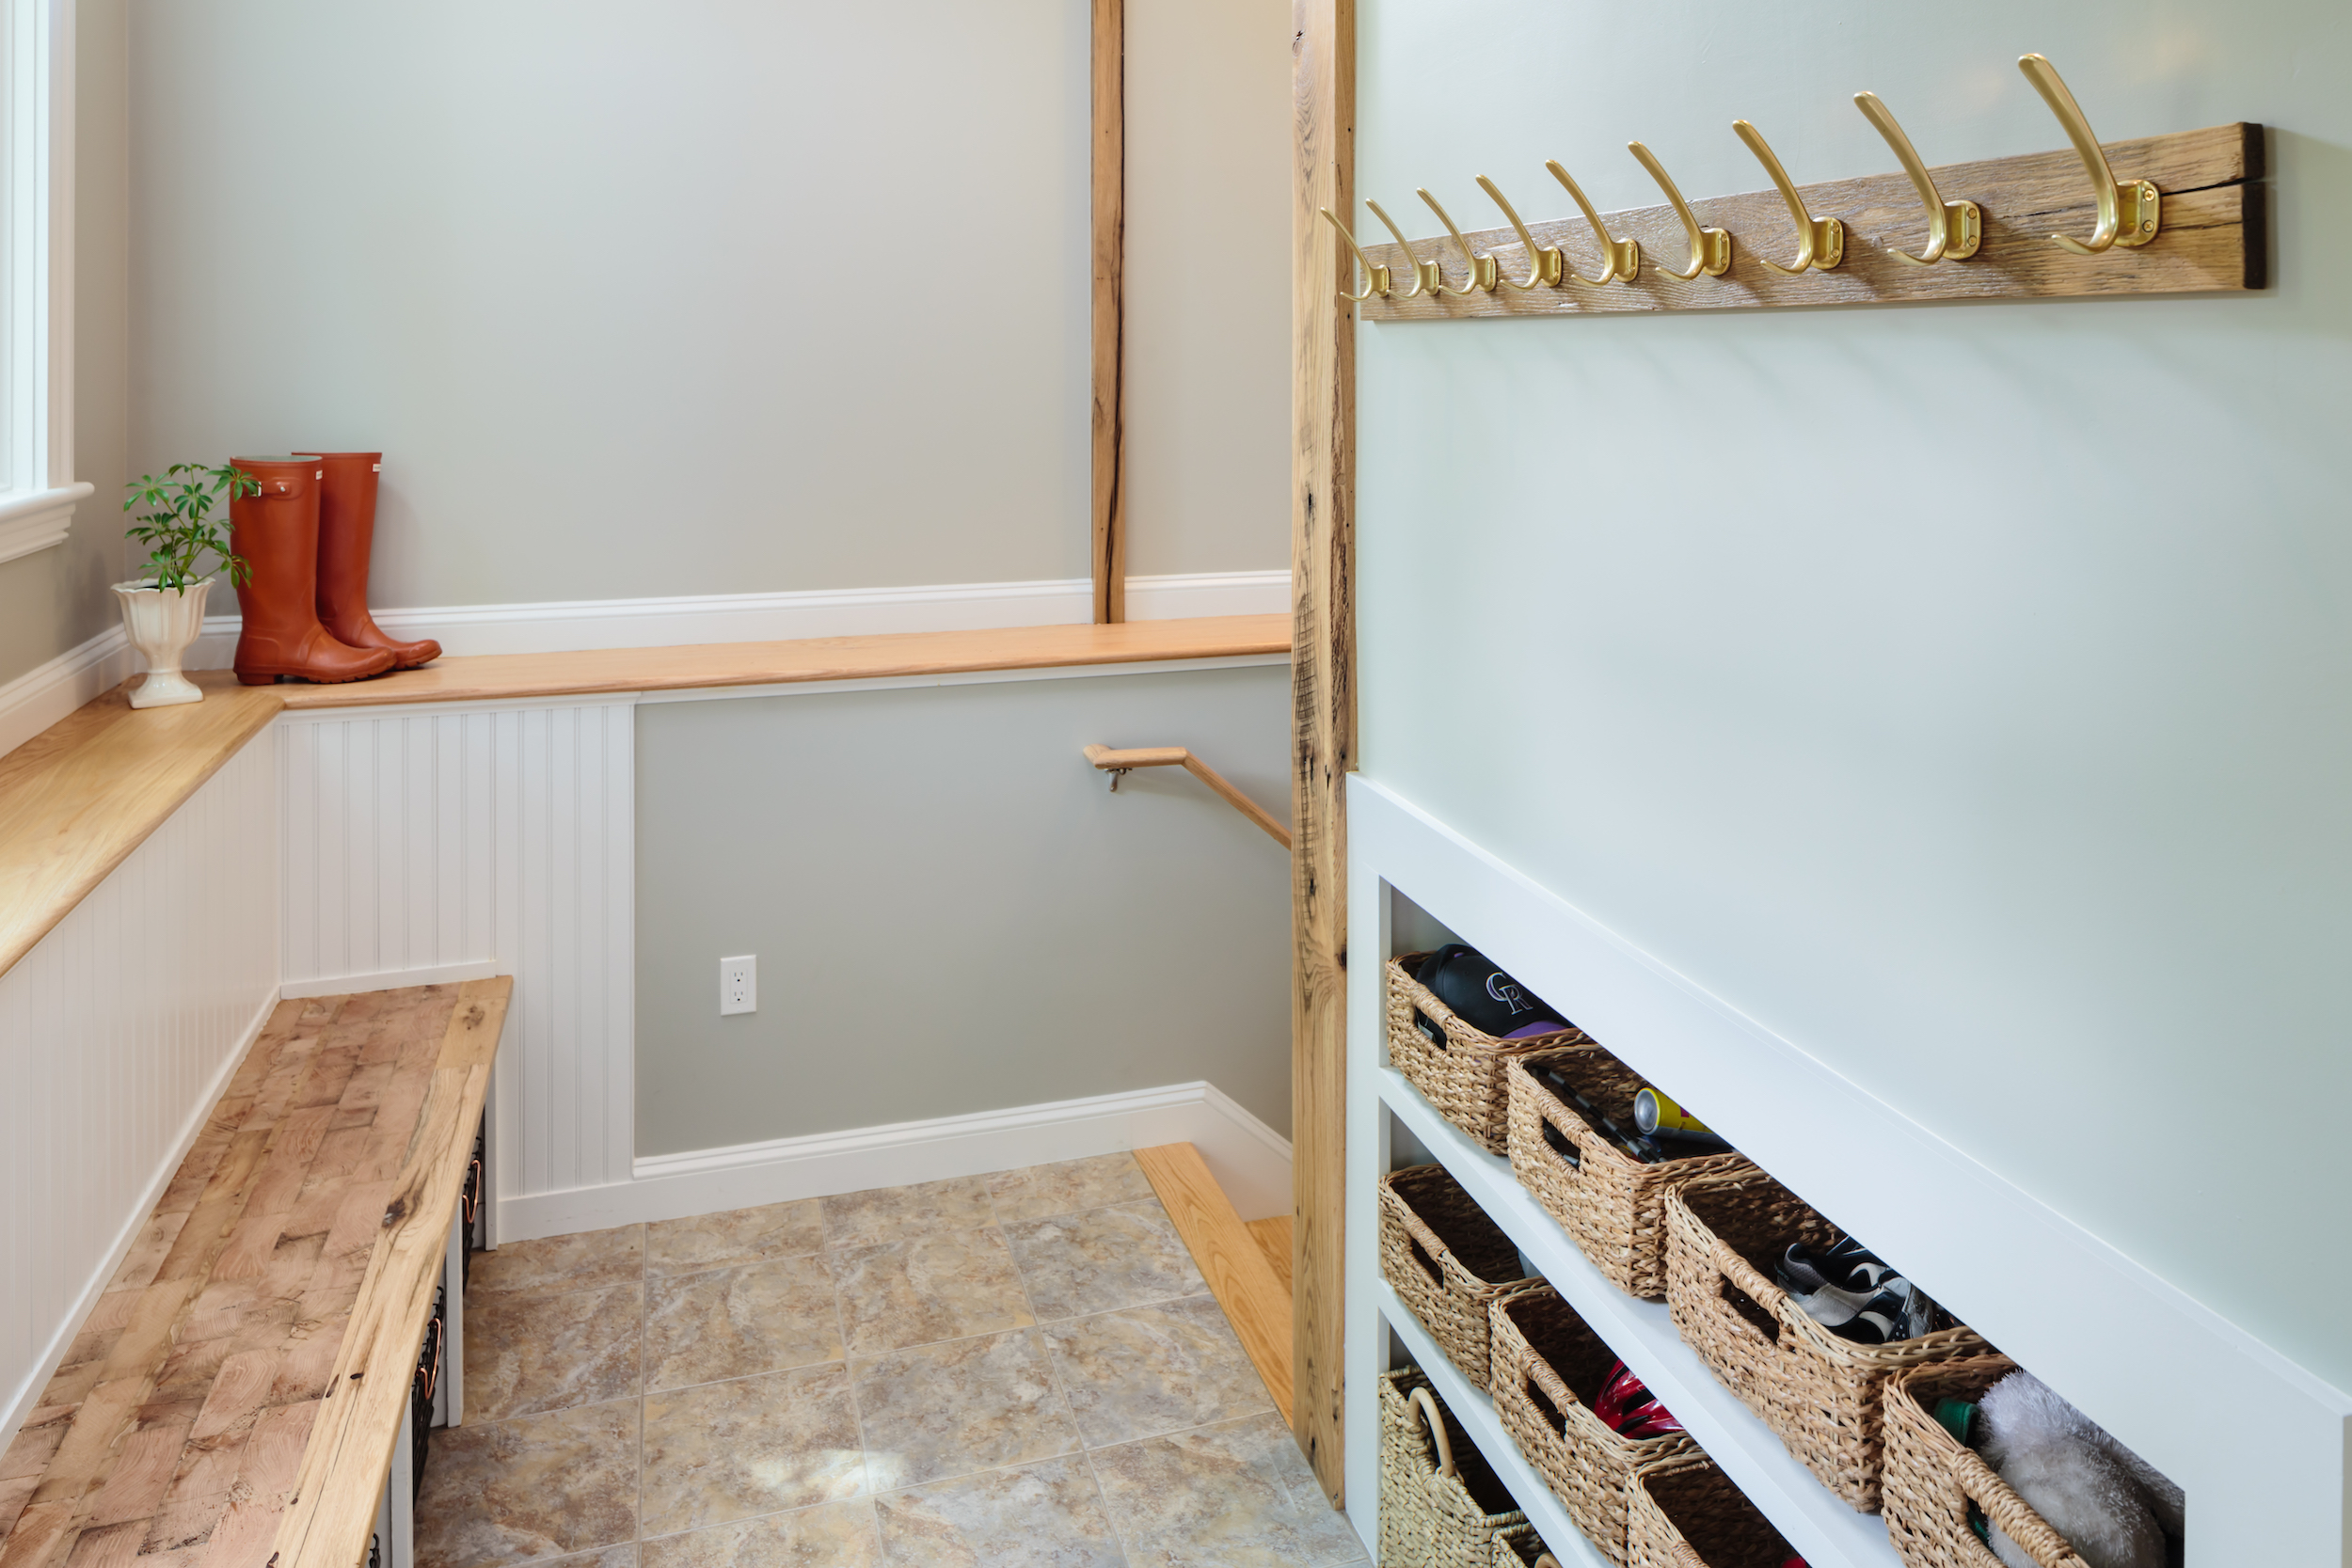 4-KitchenVisions-Mudroom-New-Entrance-Belmont.jpg